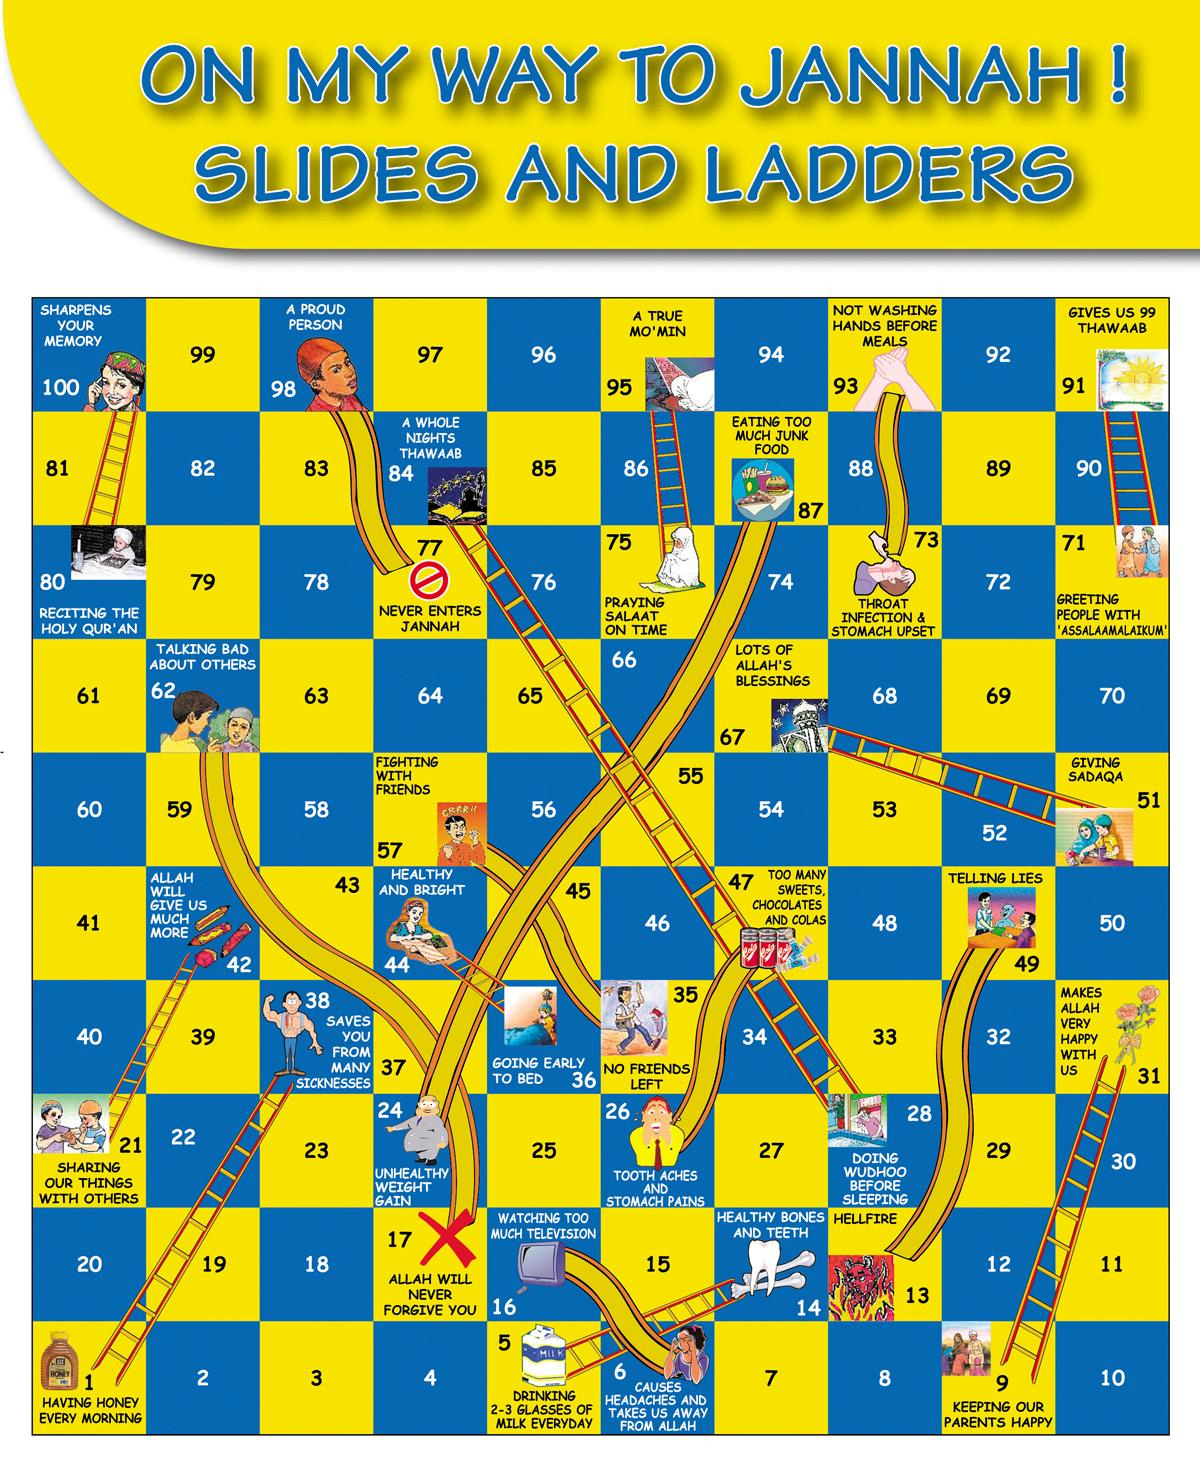 Slides and Ladders – On My Way To Jannah | Buzz Ideazz